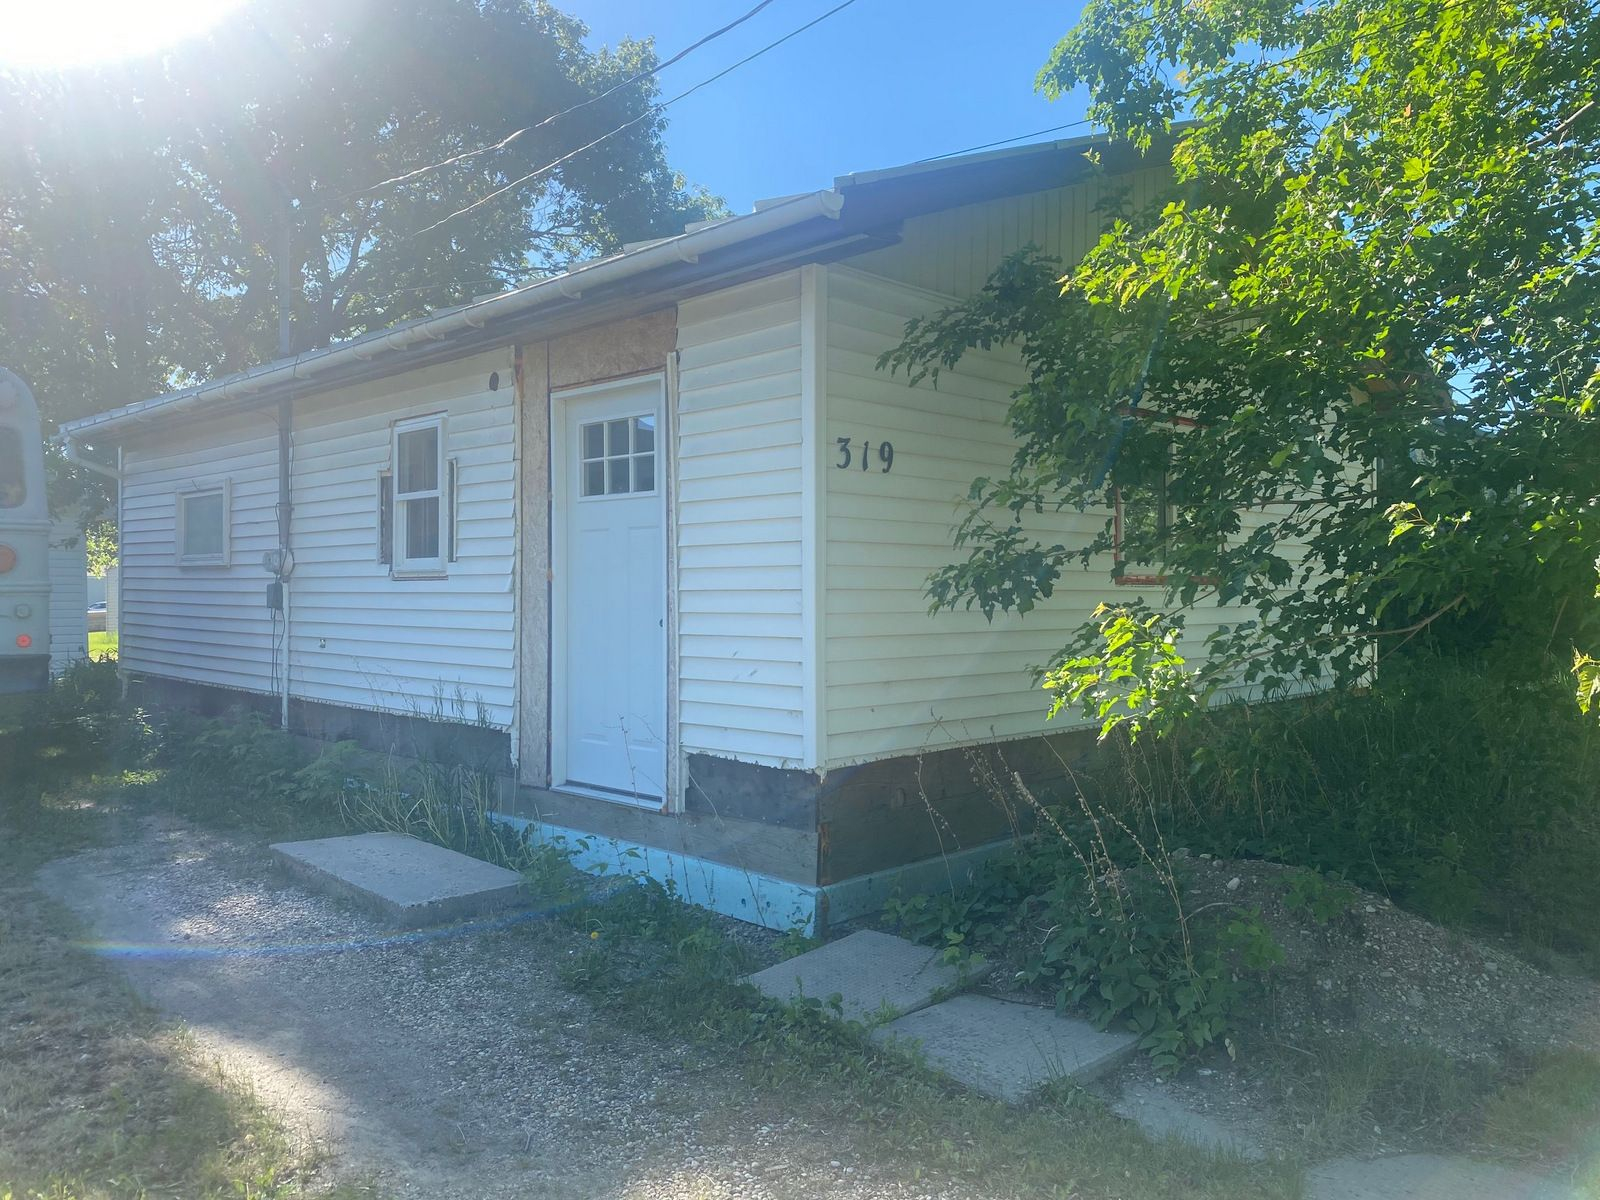 Main Photo: 319 South Street in Treherne: House for sale : MLS®# 202115342